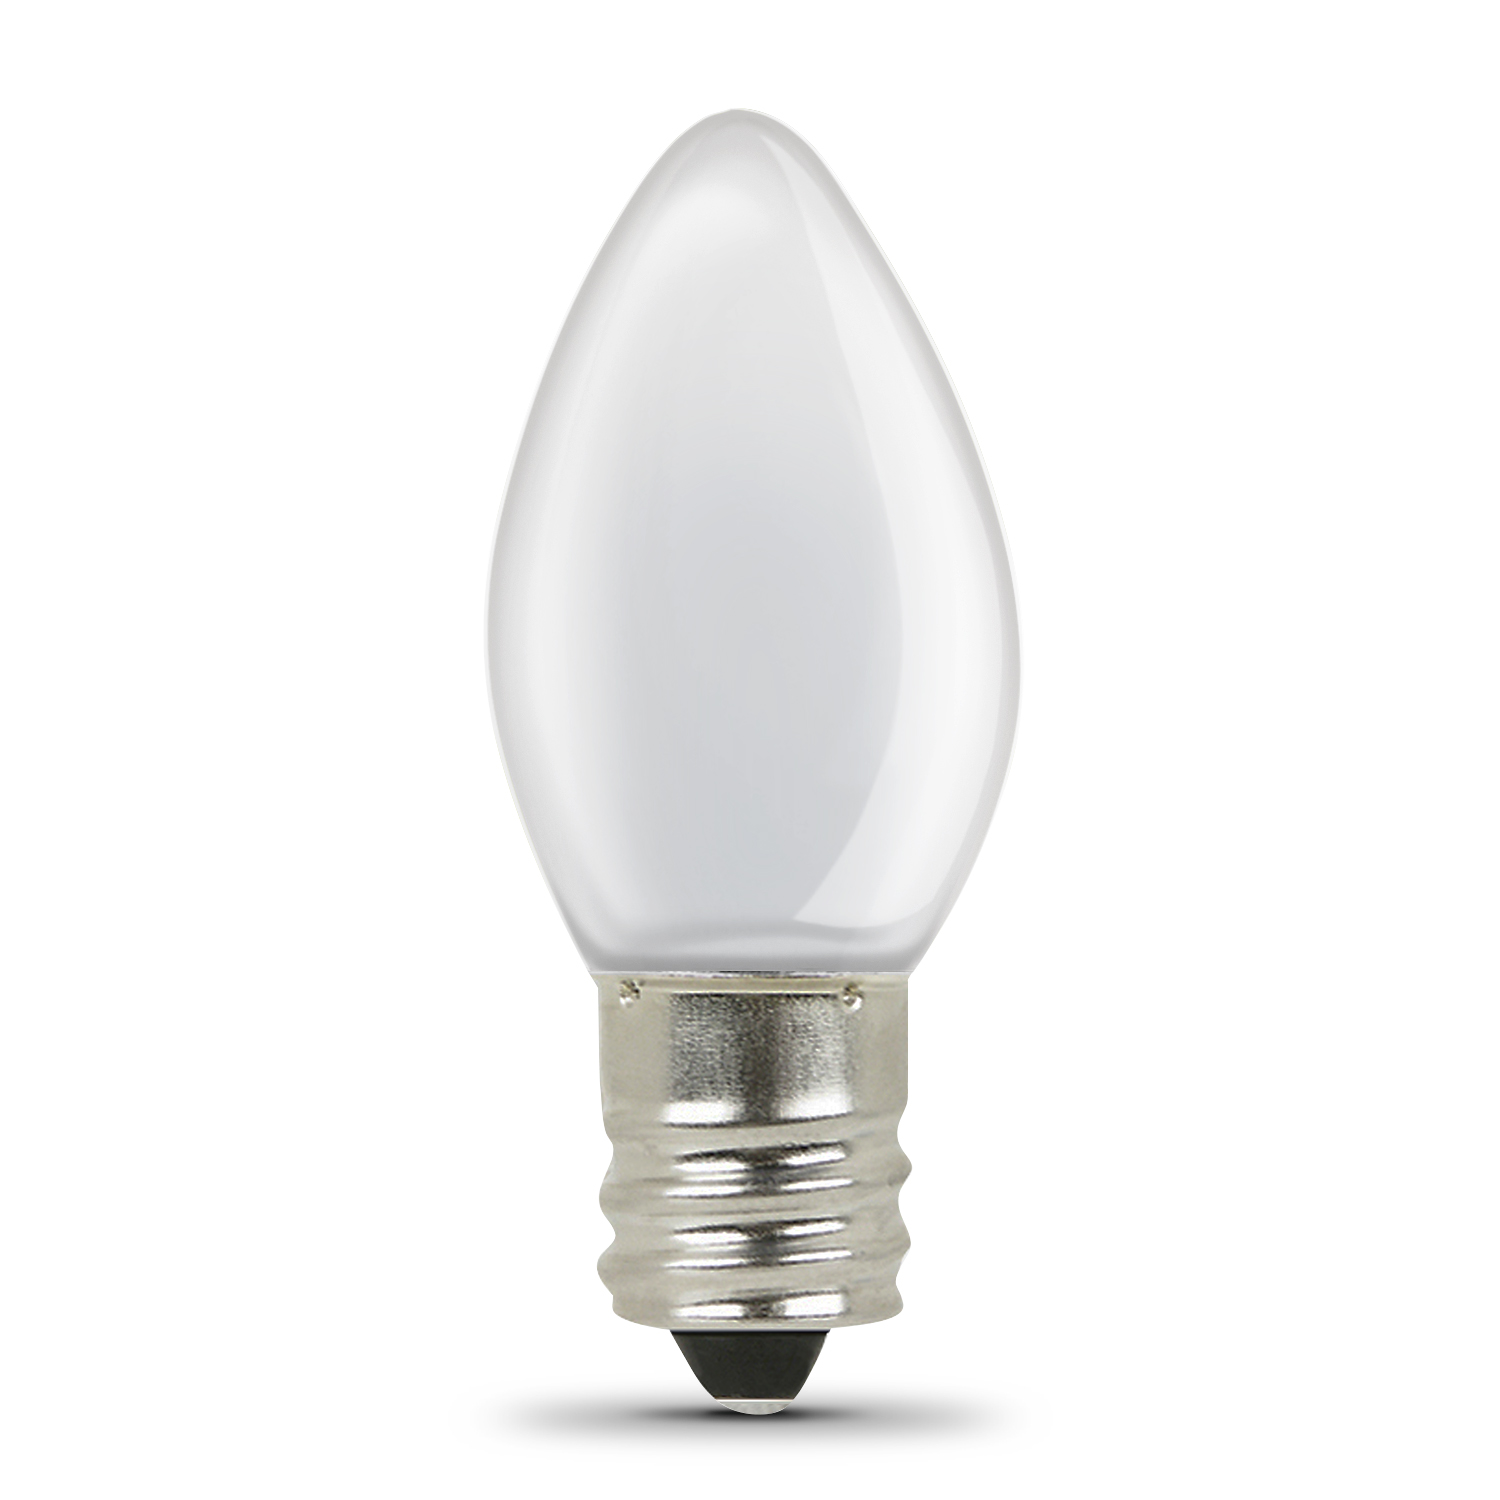 Feit Electric 7W equivalent 5000K LED night light bulb